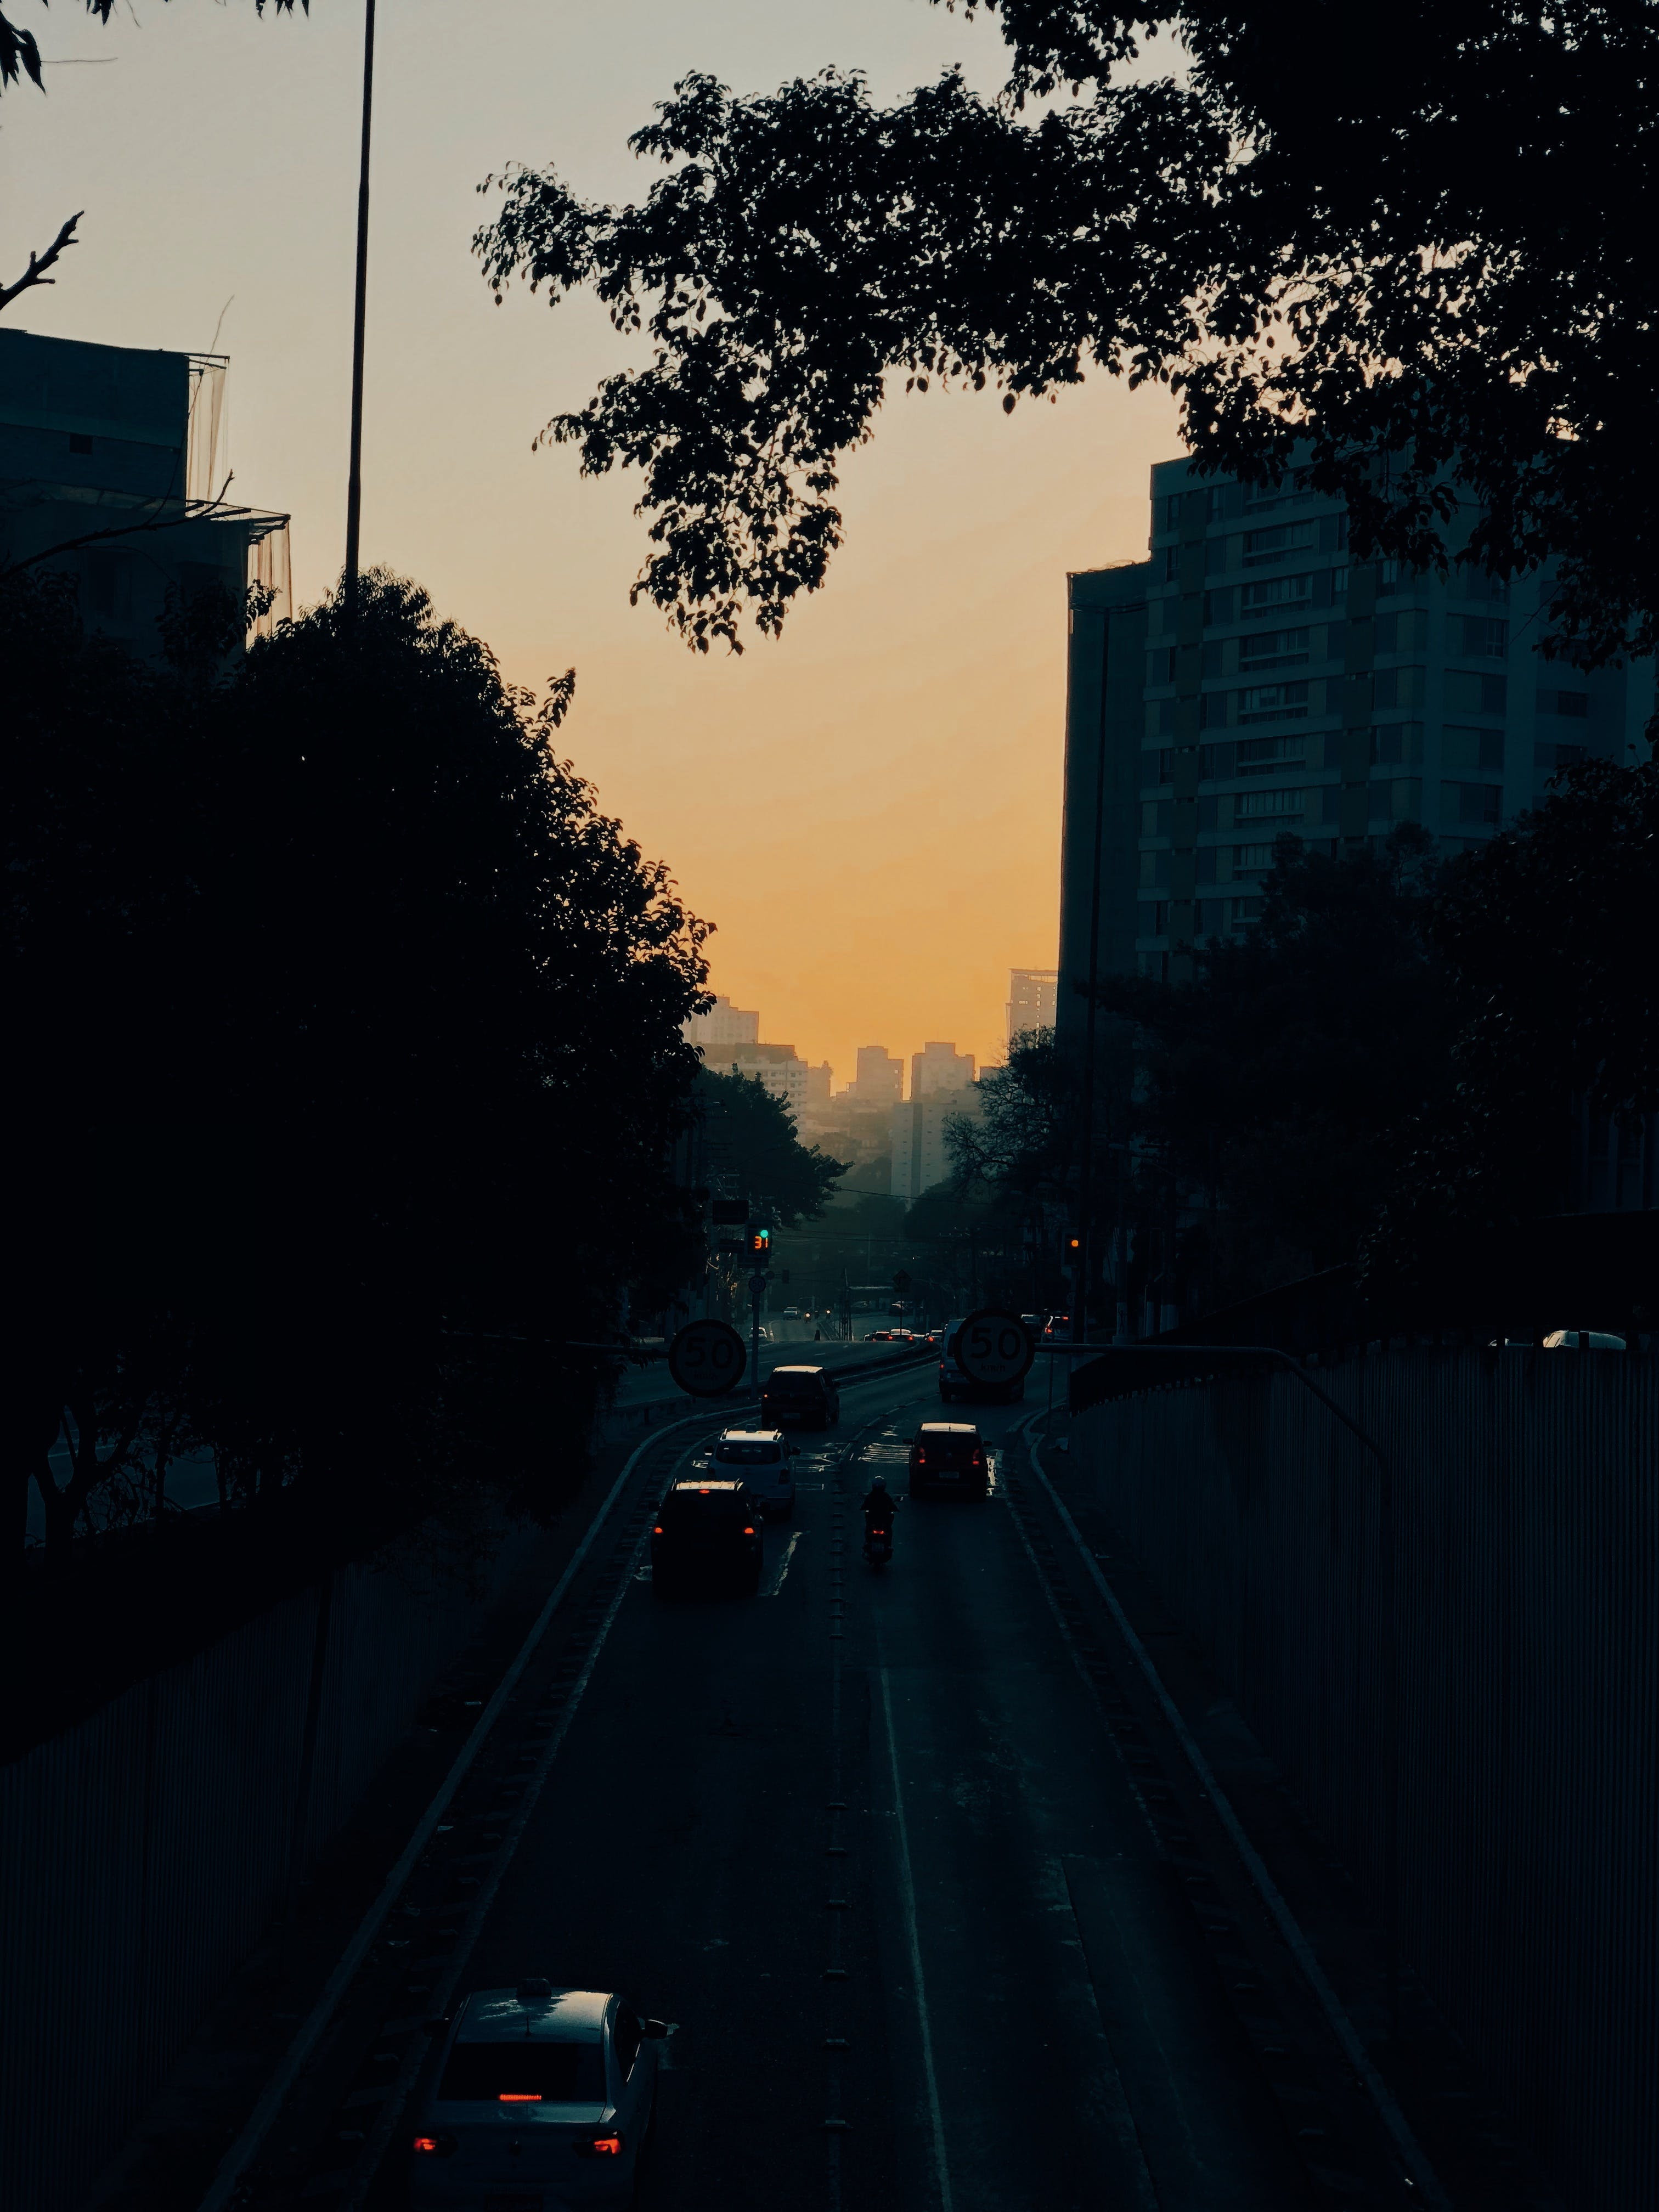 Cars on Road Between Buildings during Golden Hour